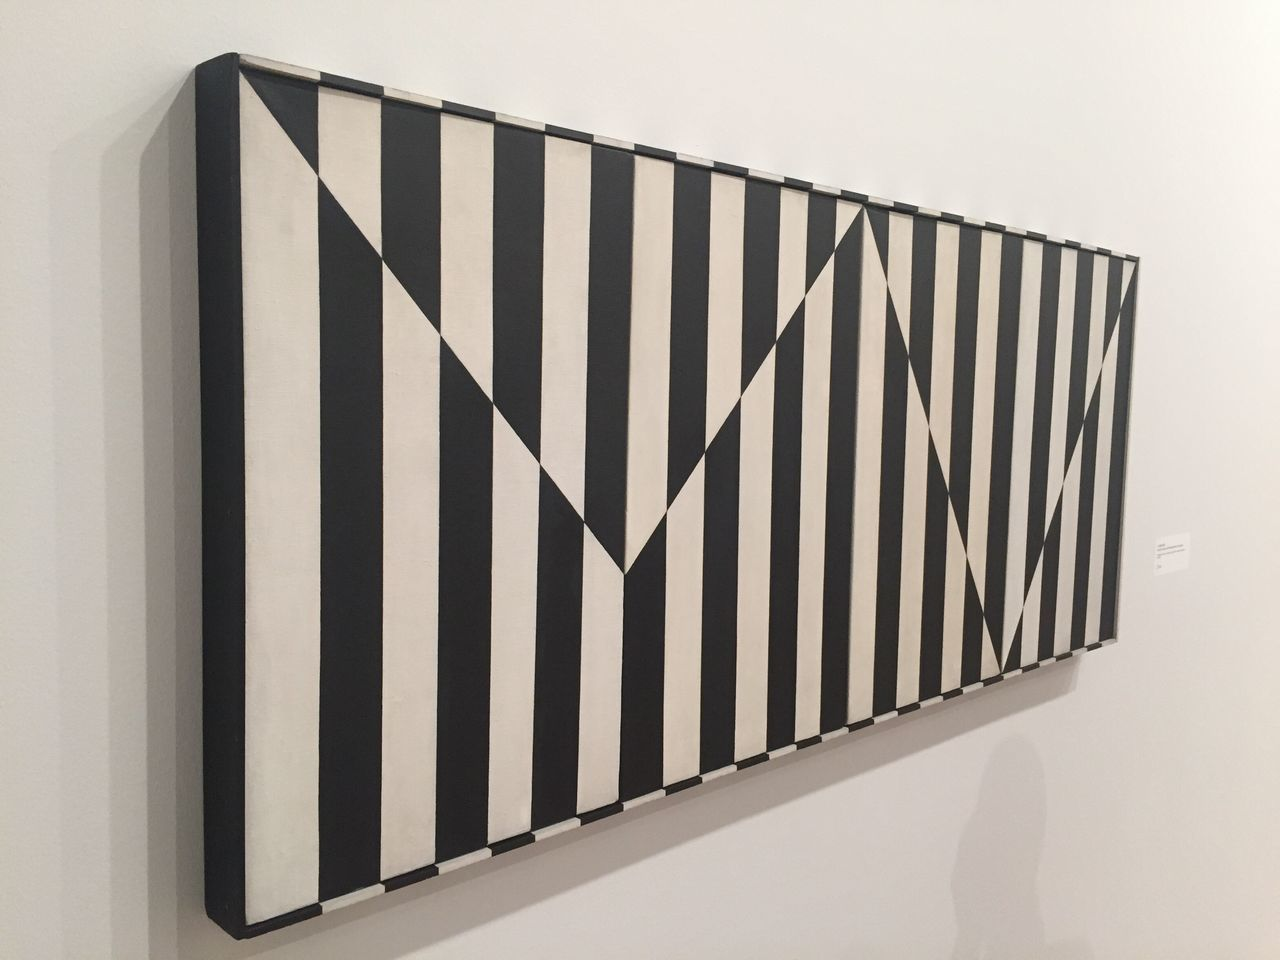 Carmen Herrera Cuban Artist woman Striped black and white Geometric Abstraction Architecture Whitney Museum, NYC shapes geometric Lineart Diagonal Lines Movement Cuban Lady Paris New York